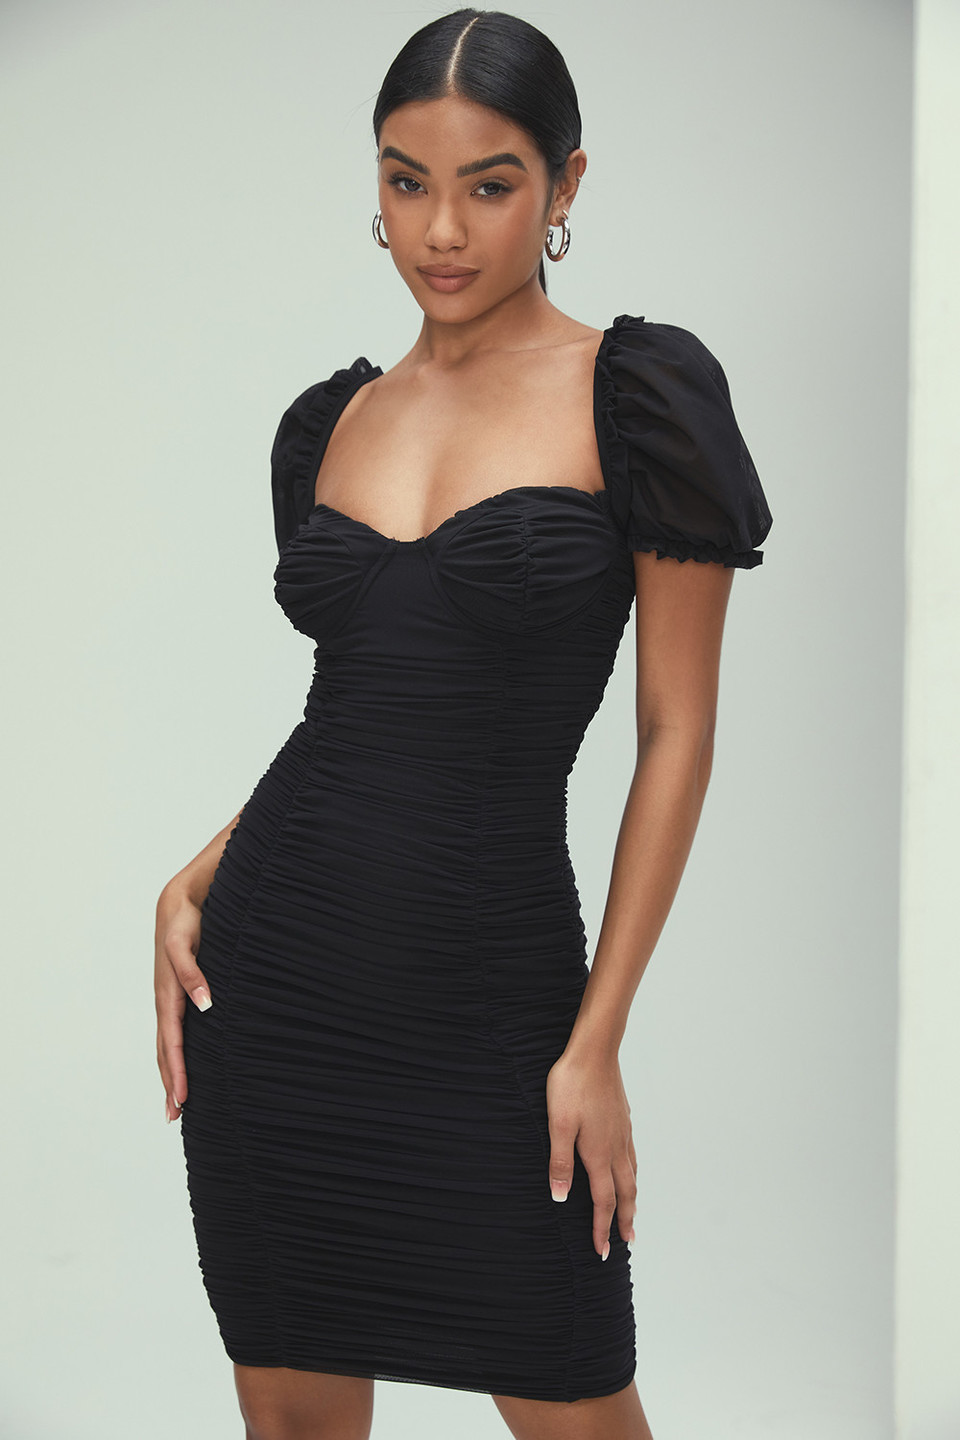 Vixen Black Ruched Mesh Dress